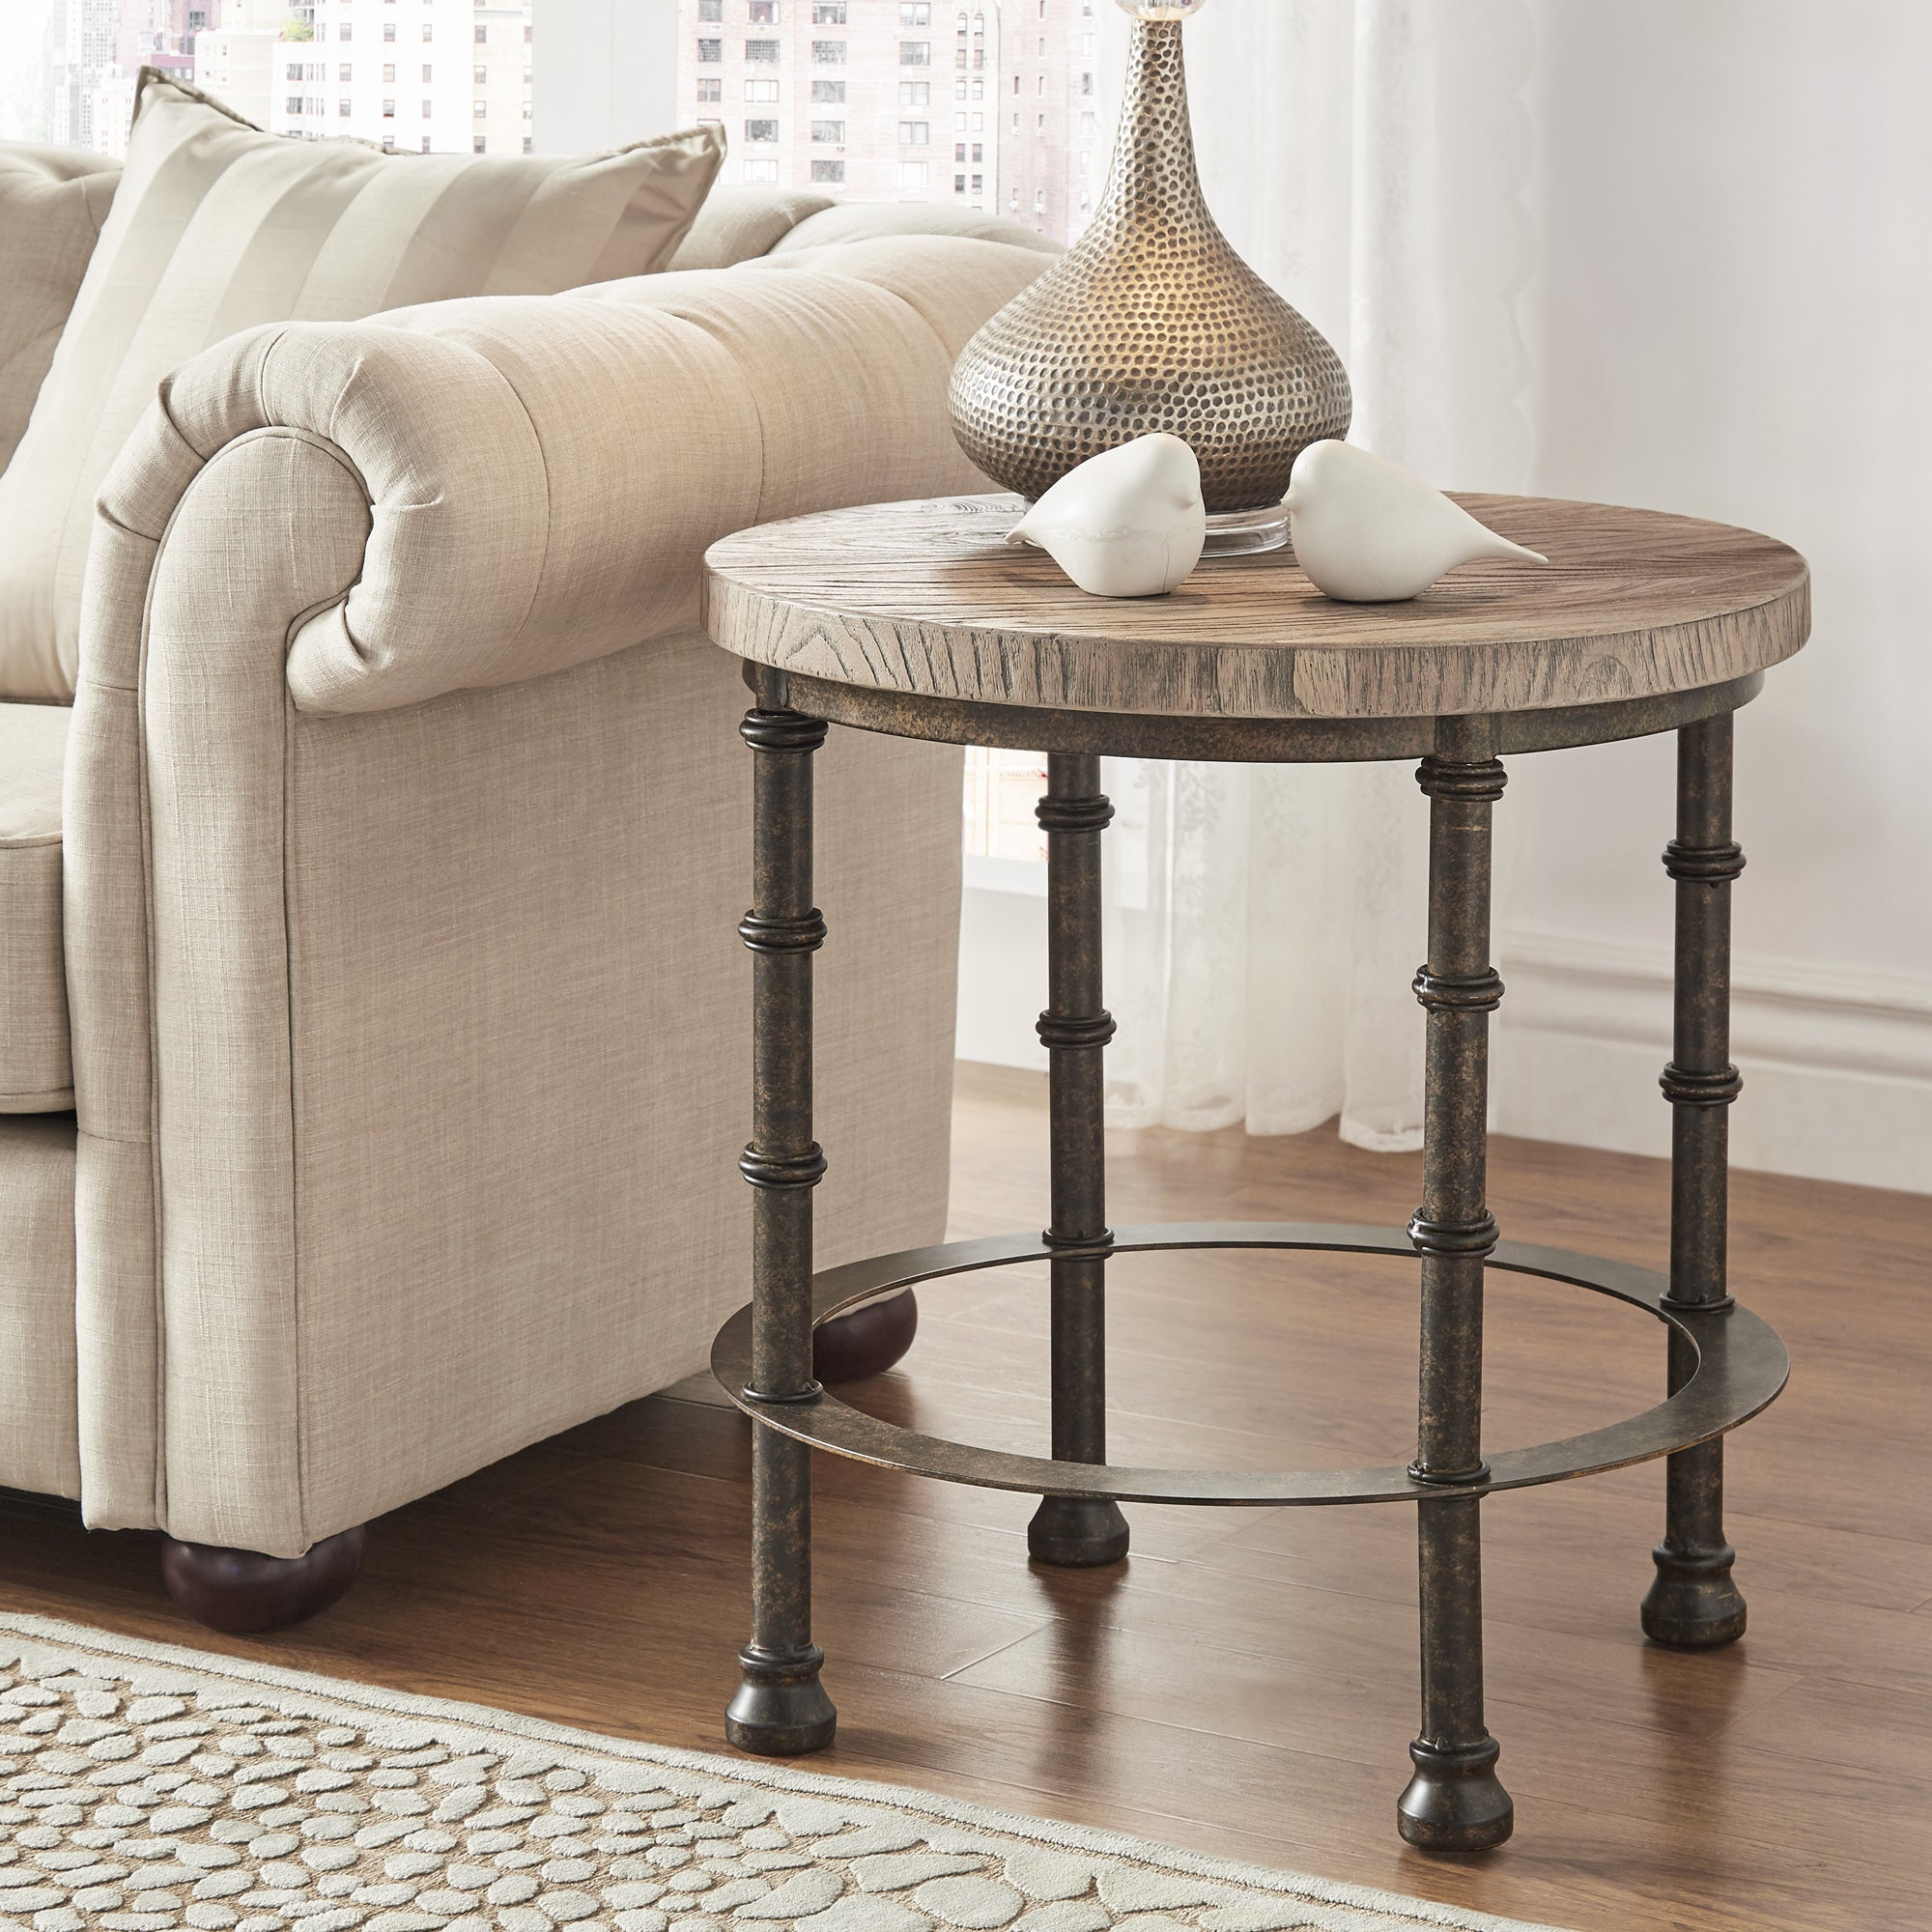 Shop Nori Industrial End Table By INSPIRE Q Artisan